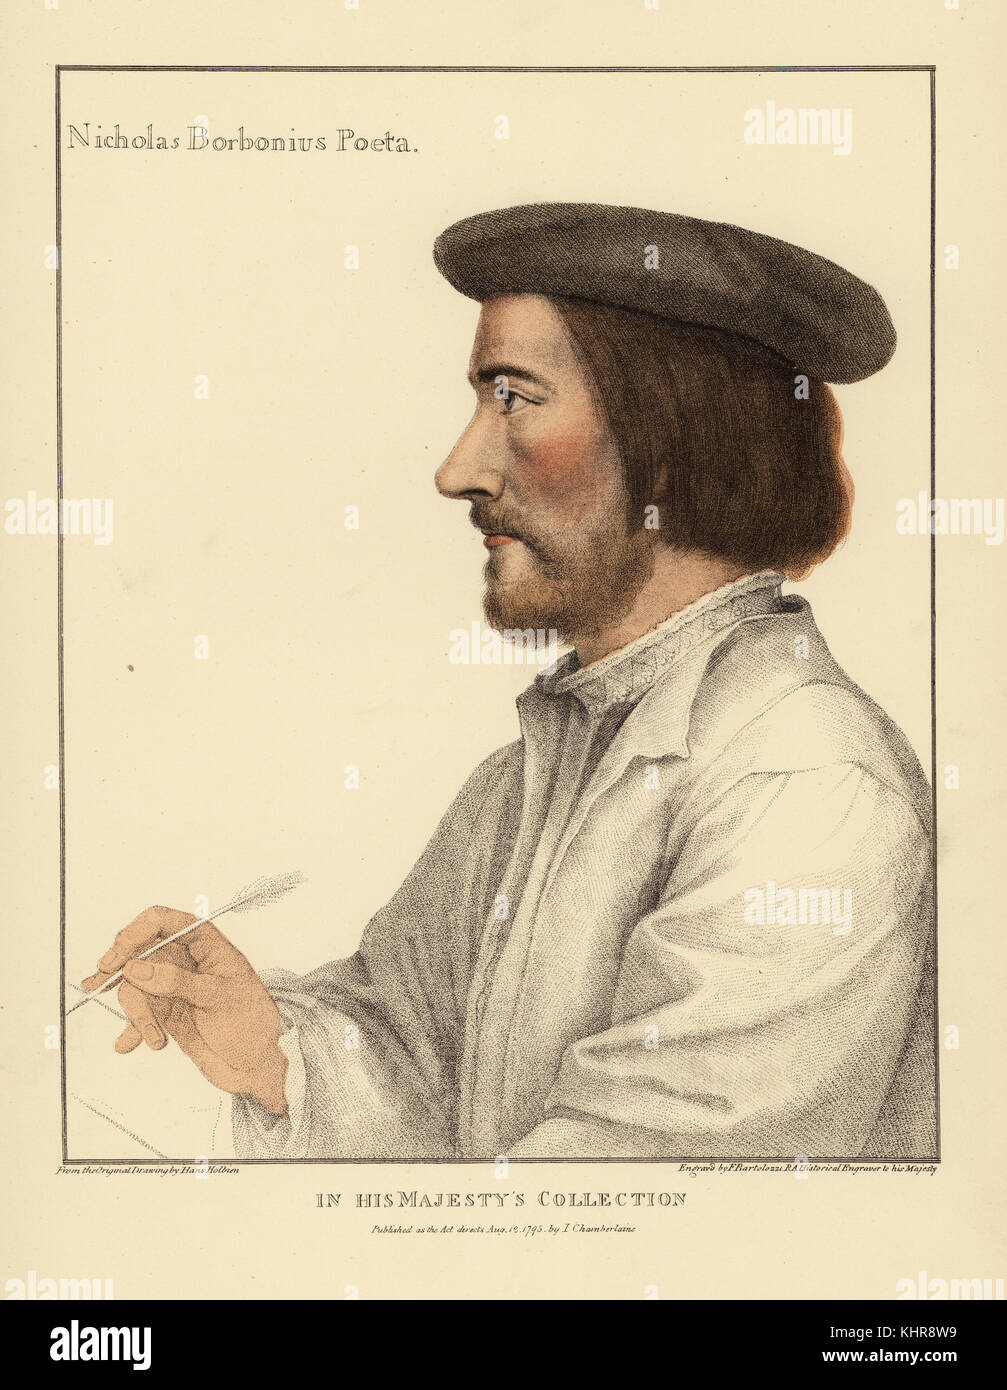 Nicholas Borbonius, preceptor, Latin poet of middling fame, tutor to the children of Margaret Queen of Navarre, - Stock Image